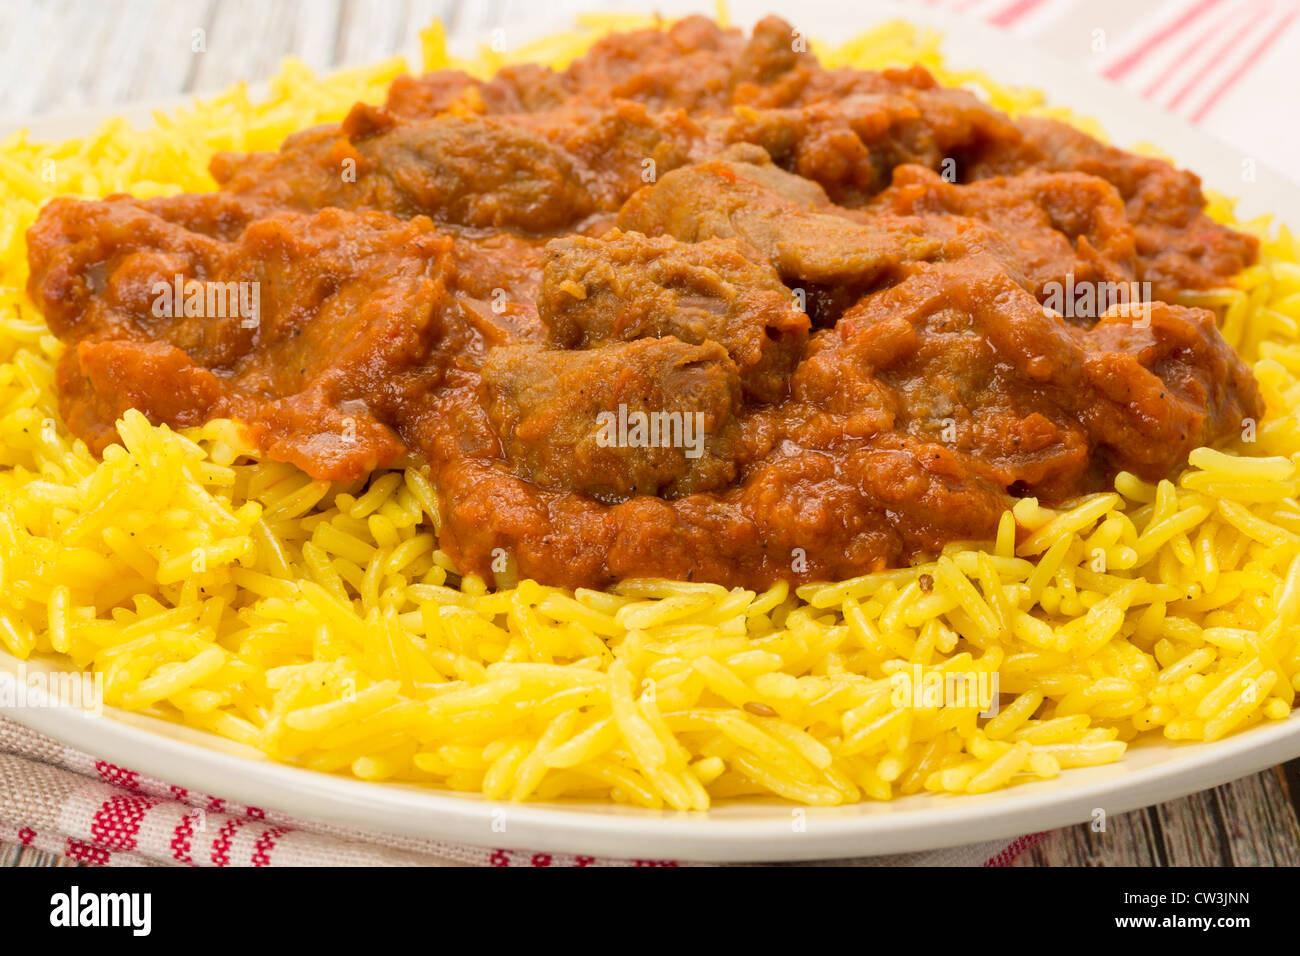 close-up shot of an Indian meal of lamb rogan josh served with fragrant pilau rice - Studio shot - Stock Image